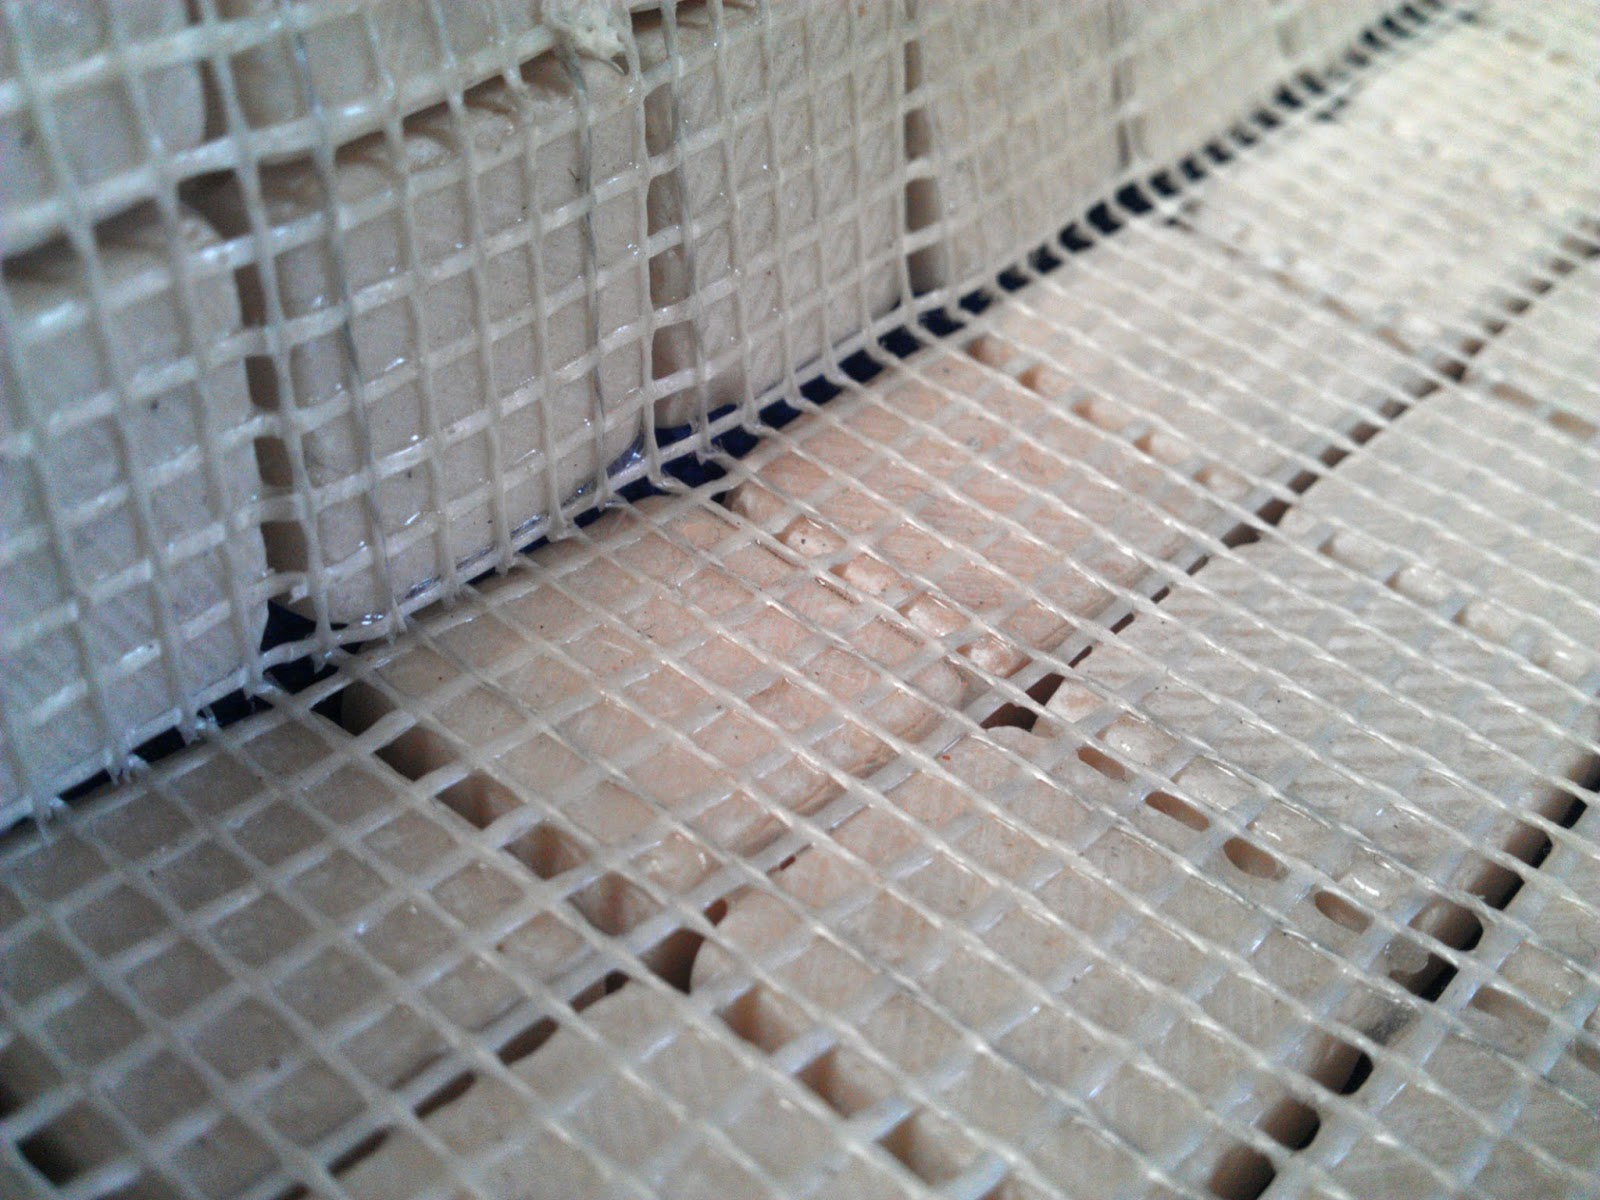 The Mesh Backed Tiles Right Used In This Project Left Were Not Suitable For Swimming Pools Due To Lack Of Adhesion Area On Back Tile